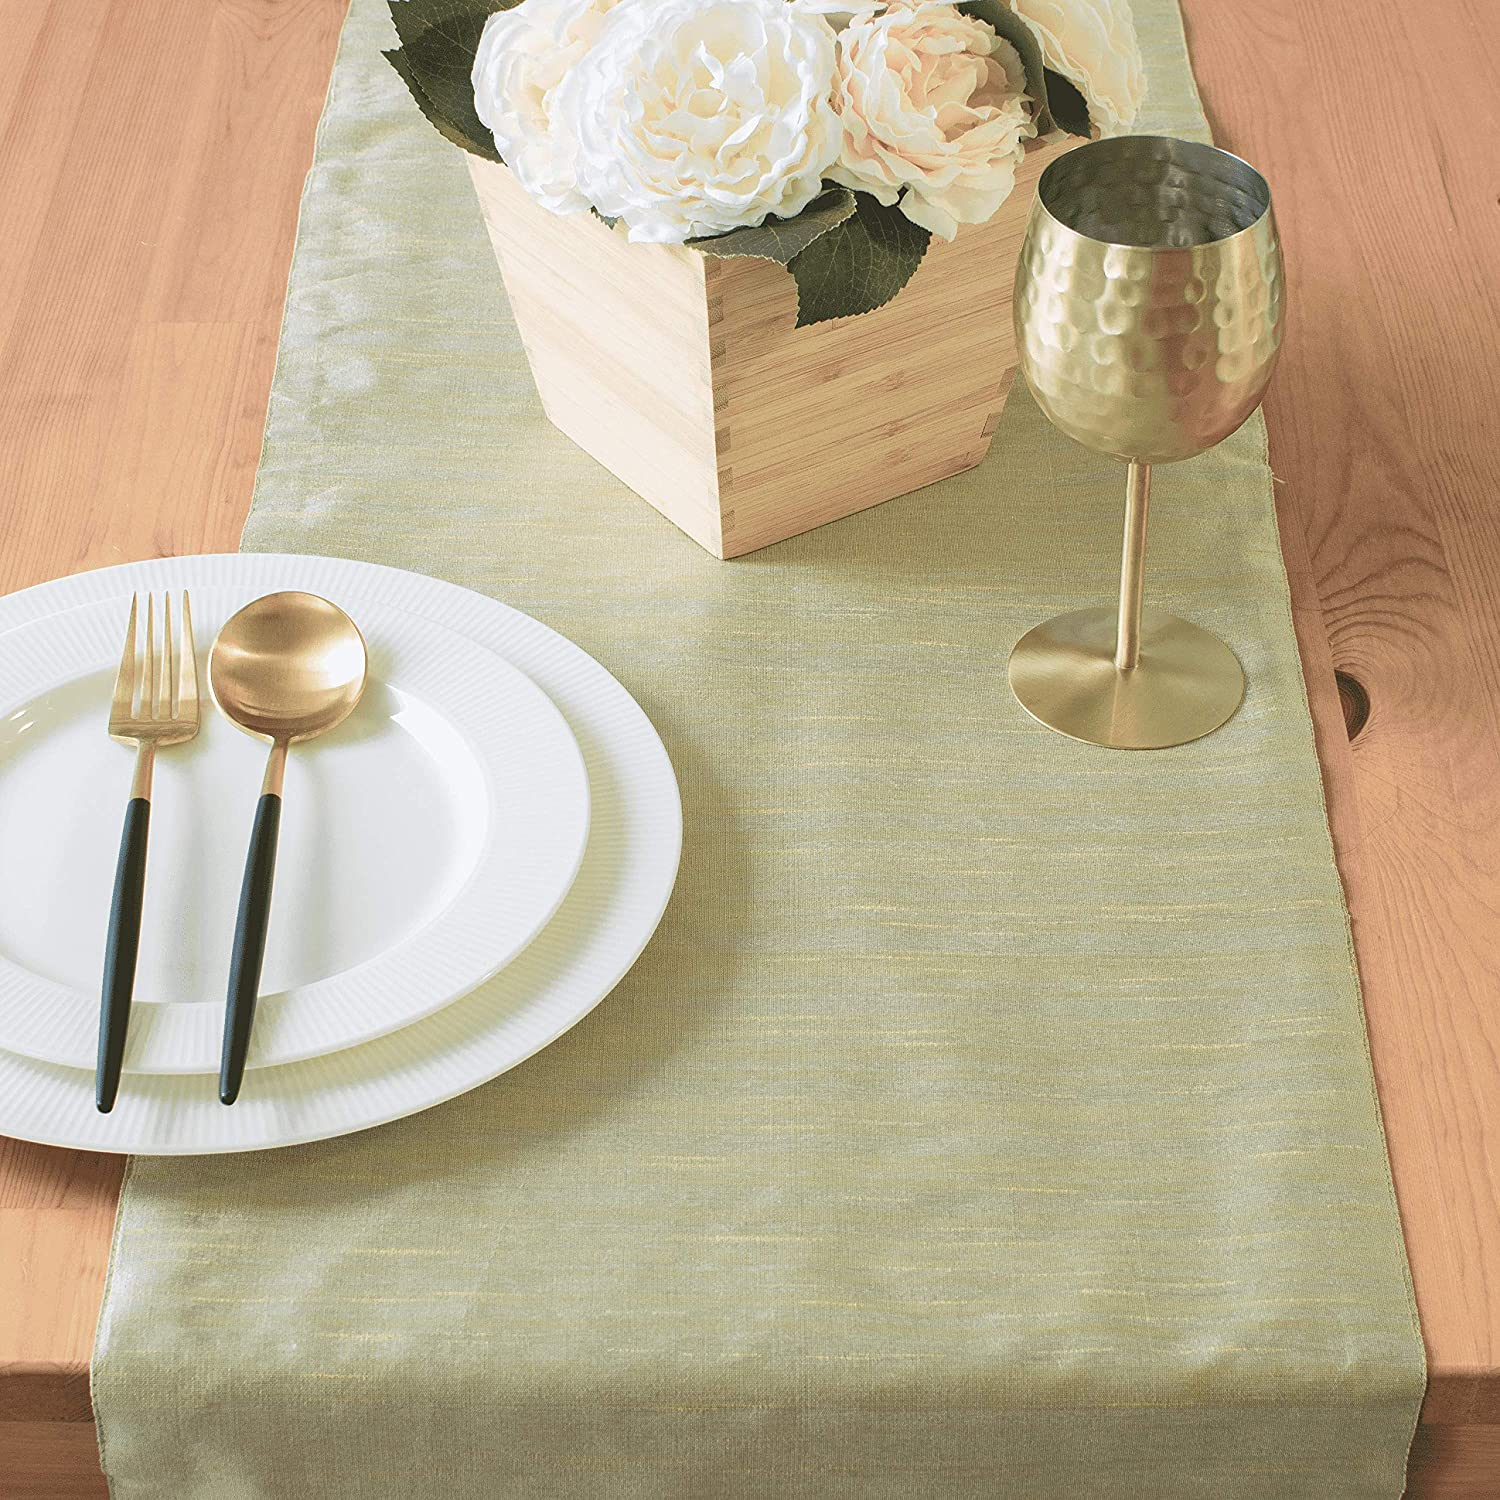 The White Petals Sage Green Round Table Runners (13x72 Inch, Pack Of 1)  Fabric Lined | Properly Finished, No Fray Edges | For Home, Kitchen, Dining  Room, ...